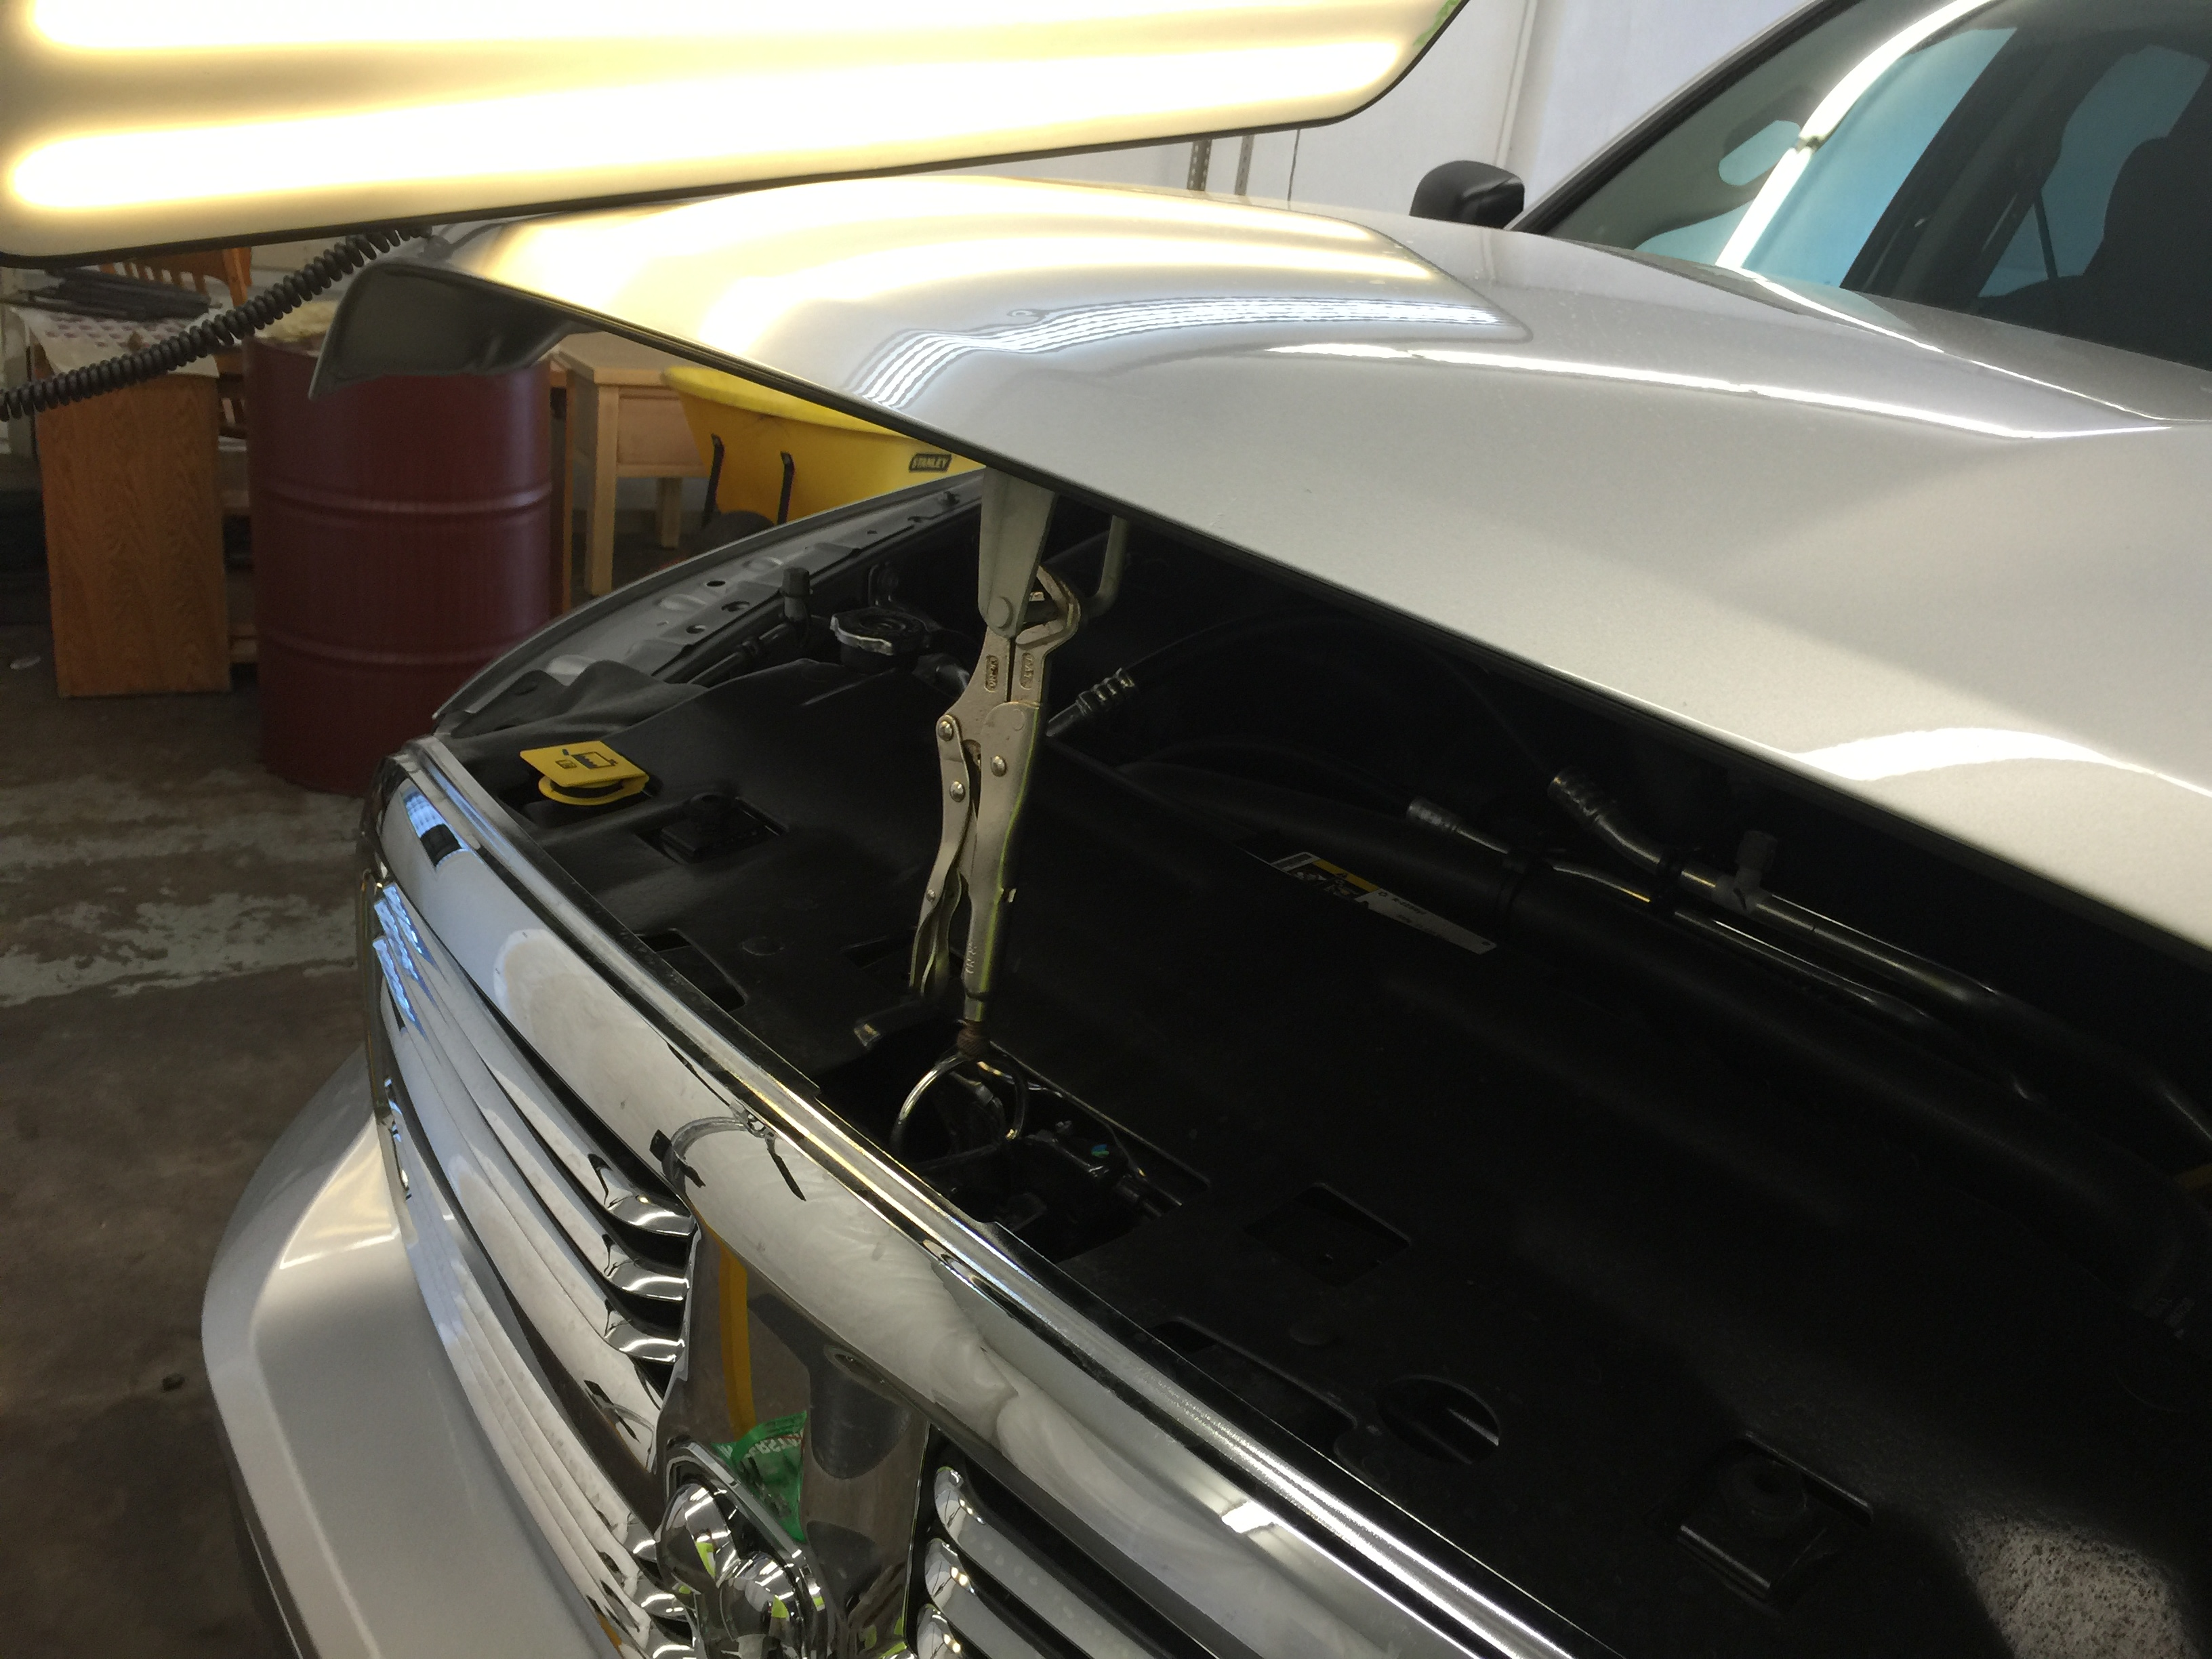 2015 Dodge Ram hail damage on hood, paintless dent repair, Springfield, IL. http://217dent.com by Michael Bocek